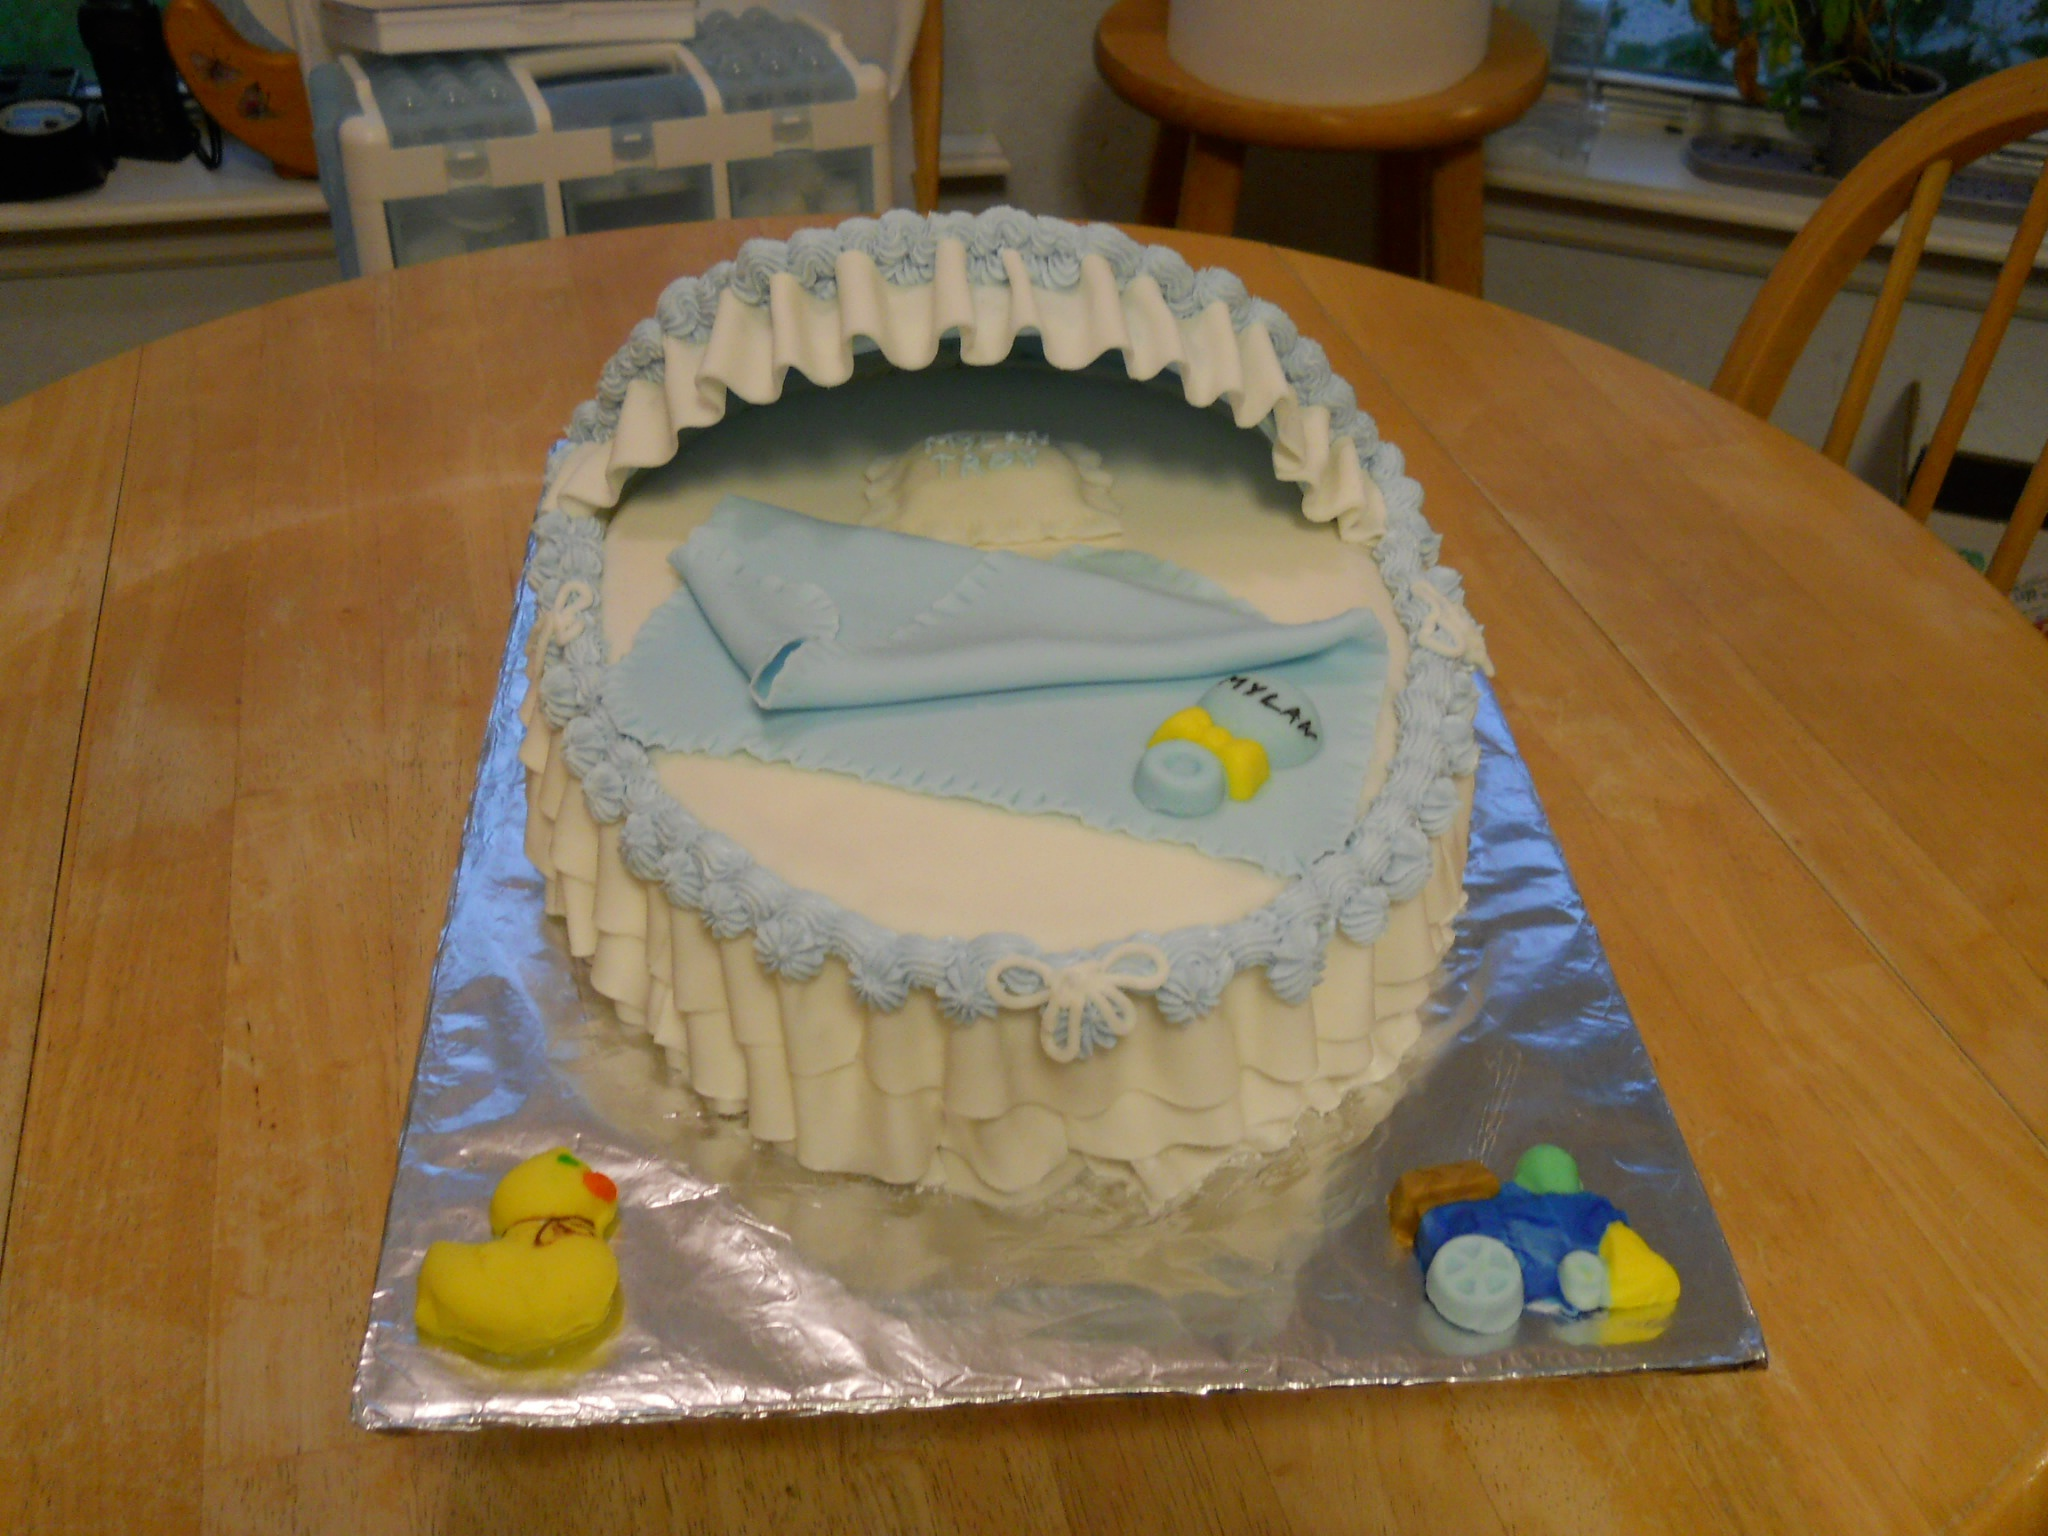 Baby shower Bassinet cake  by Susie Price Williams